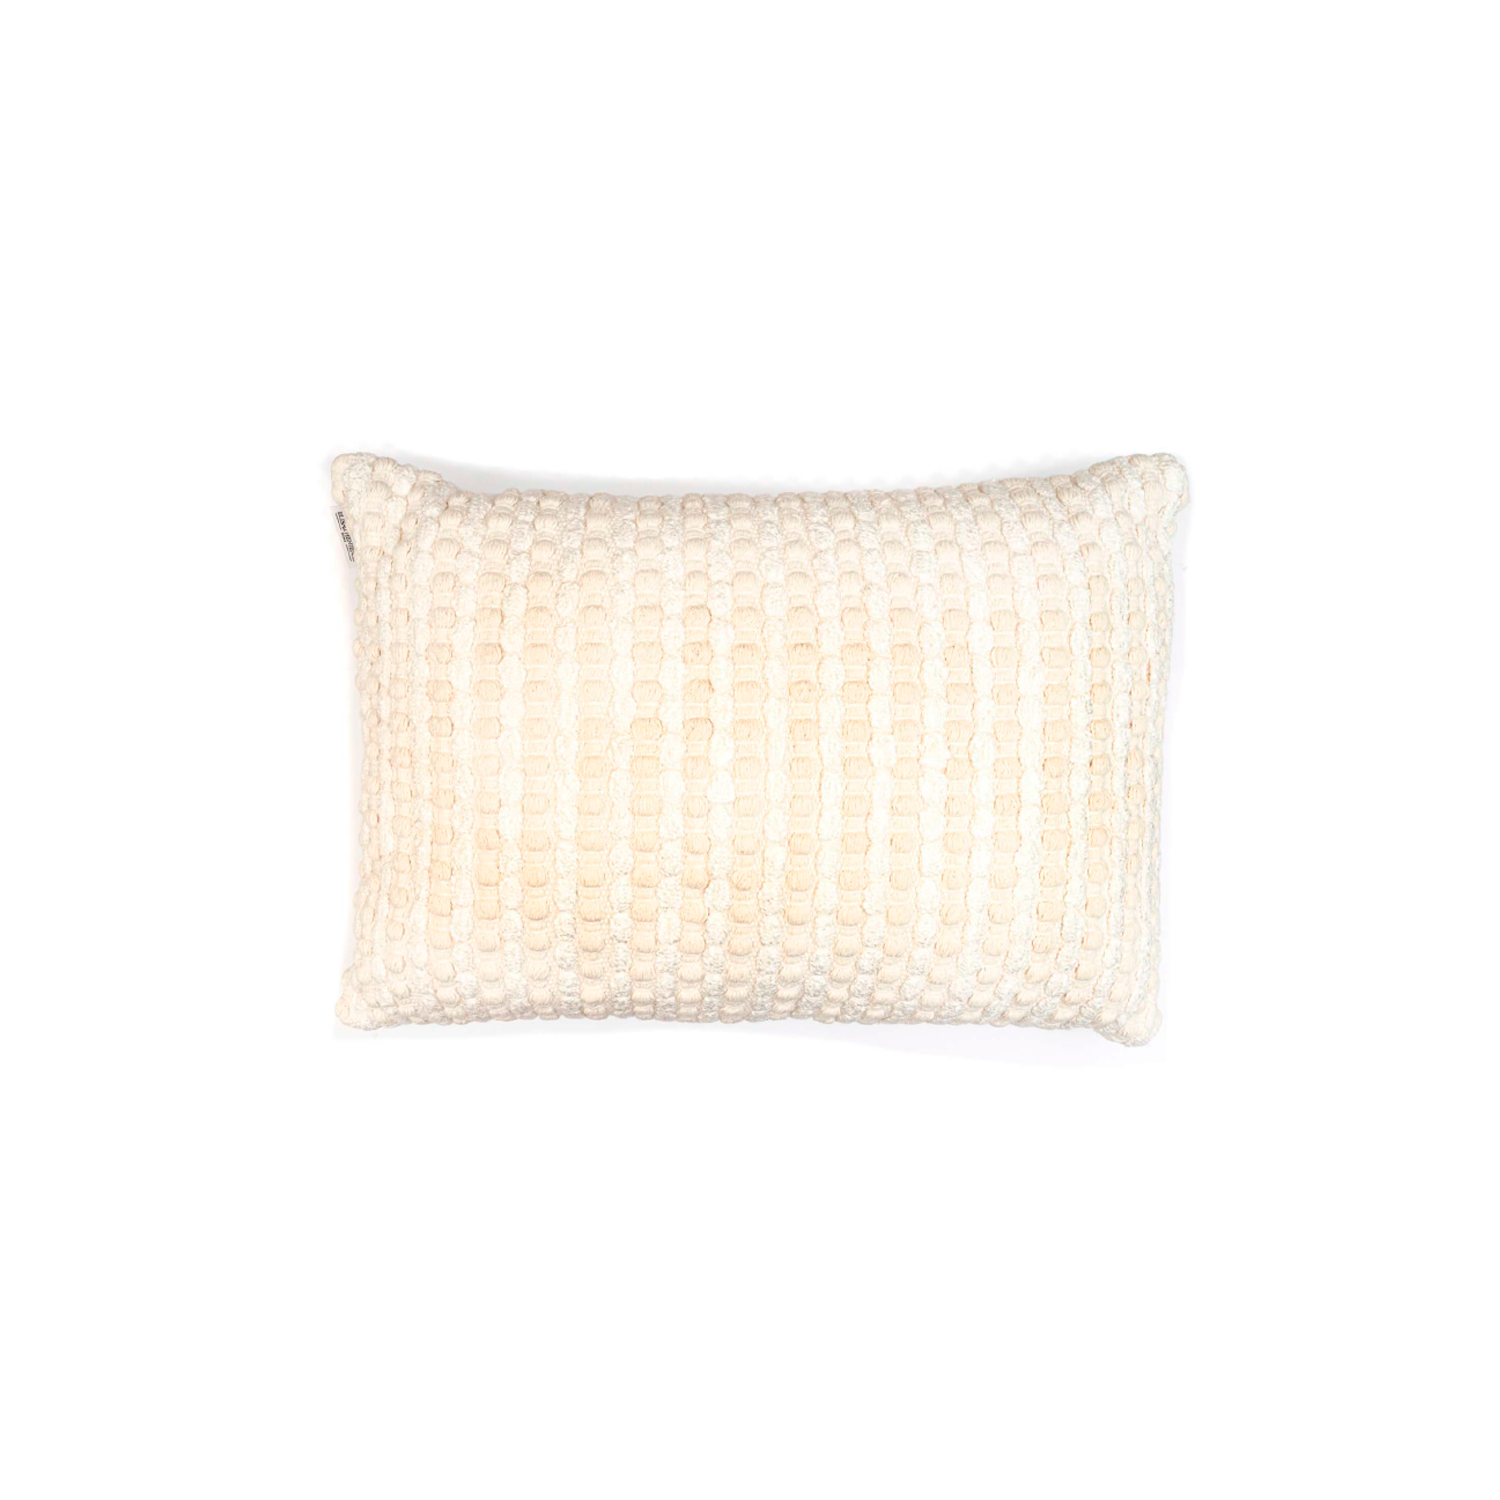 Estrela Branca Cotton Cushion Large - The Flame Sustainable Collection is made from a selection of organic cotton fibres, eco-friendly, hand-woven or elaborated using traditional hand-loom techniques. Carefully knitted within a trained community of women that found in their craft a way to provide their families.  This collection combines Elisa Atheniense mission for responsible sourcing and manufacturing. Each piece is meticulously hand-loom by artisans who practised methods with age-old techniques. With a minimal electricity impact, each item crafted is therefore unique and exclusive. Weavers and artisans are the ultimate lifelines of Elisa Atheniense Home Products.  The hand woven cotton, washable cushion cover is made in Brazil and the inner cushion is made in the UK.   | Matter of Stuff